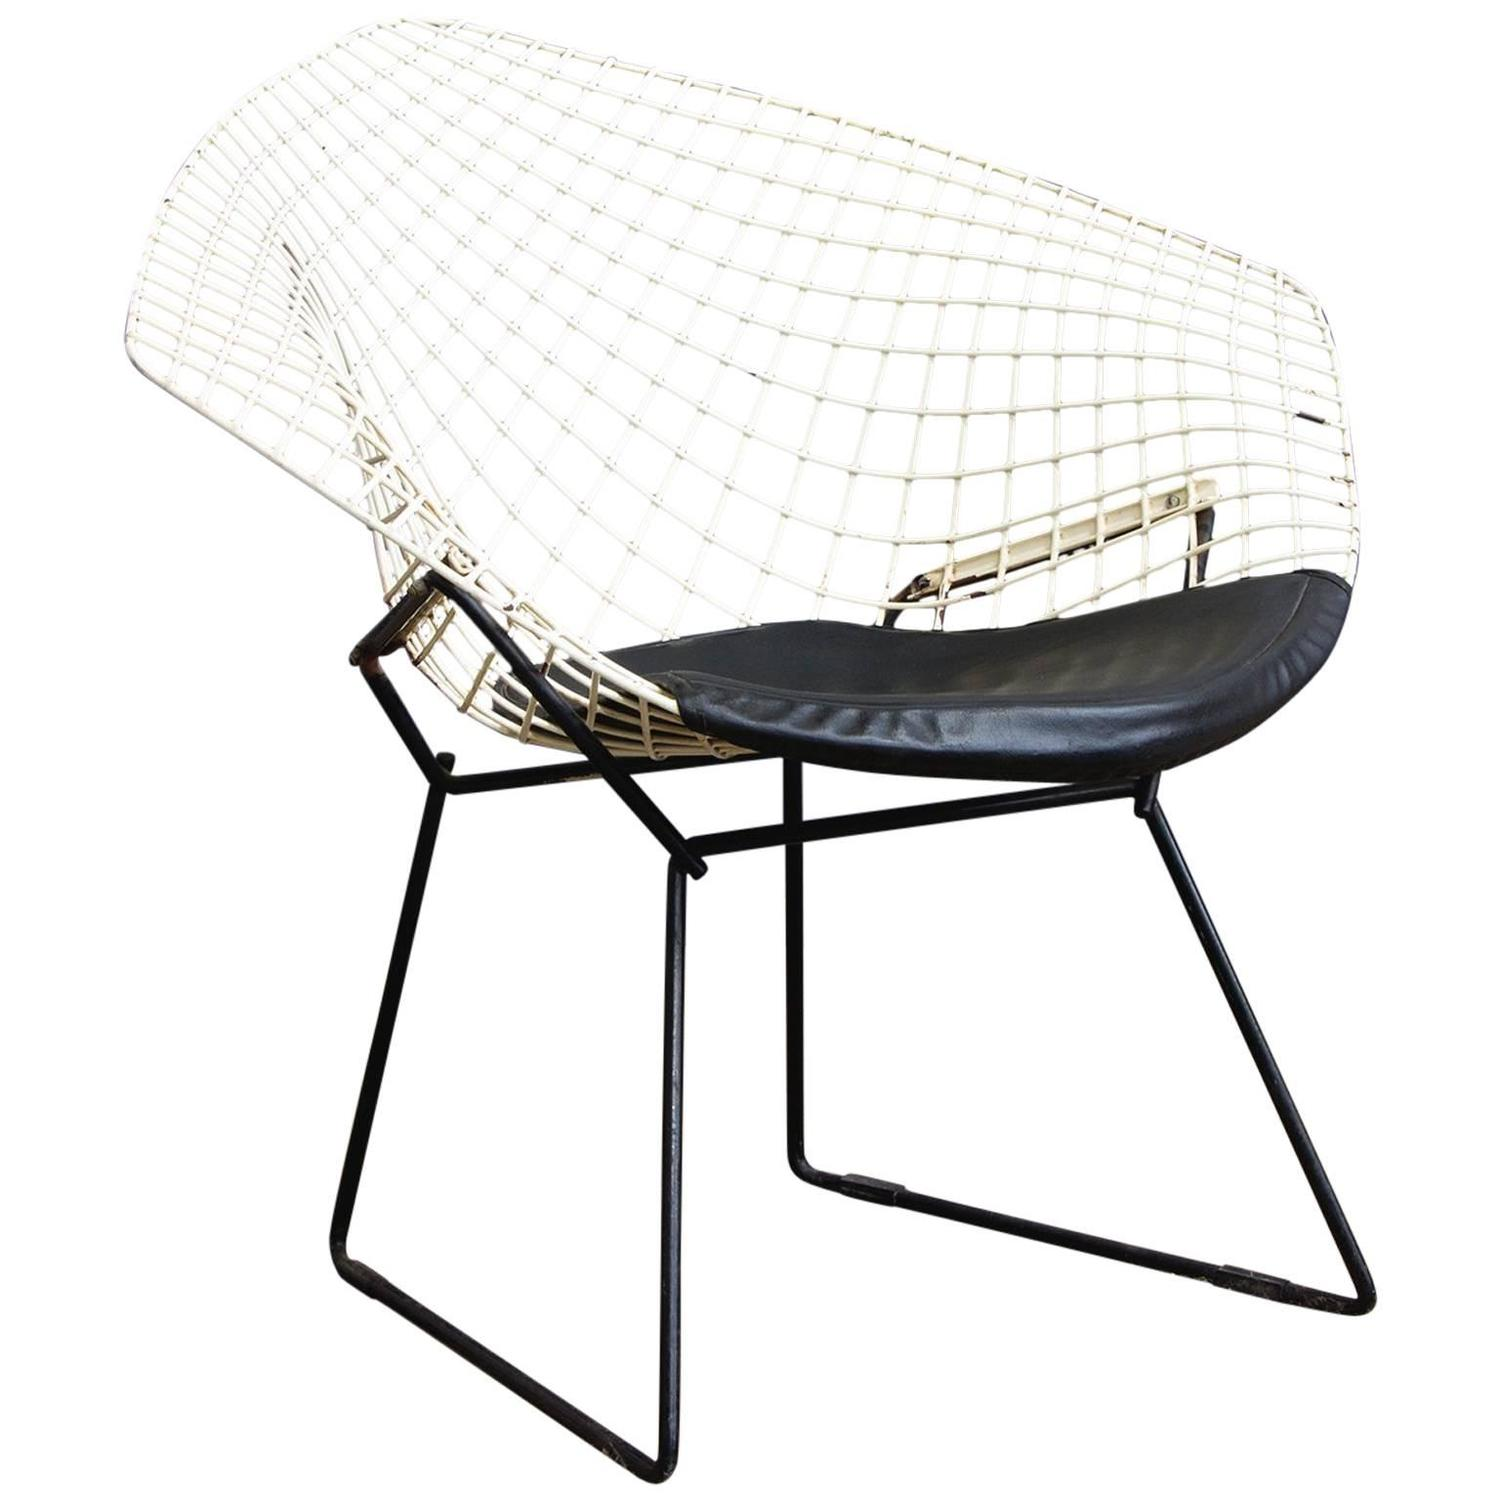 Lovely 1952, Harrie Bertoia, Diamond Chair 421, Black And White With Black Vinyl  Cushion For Sale At 1stdibs